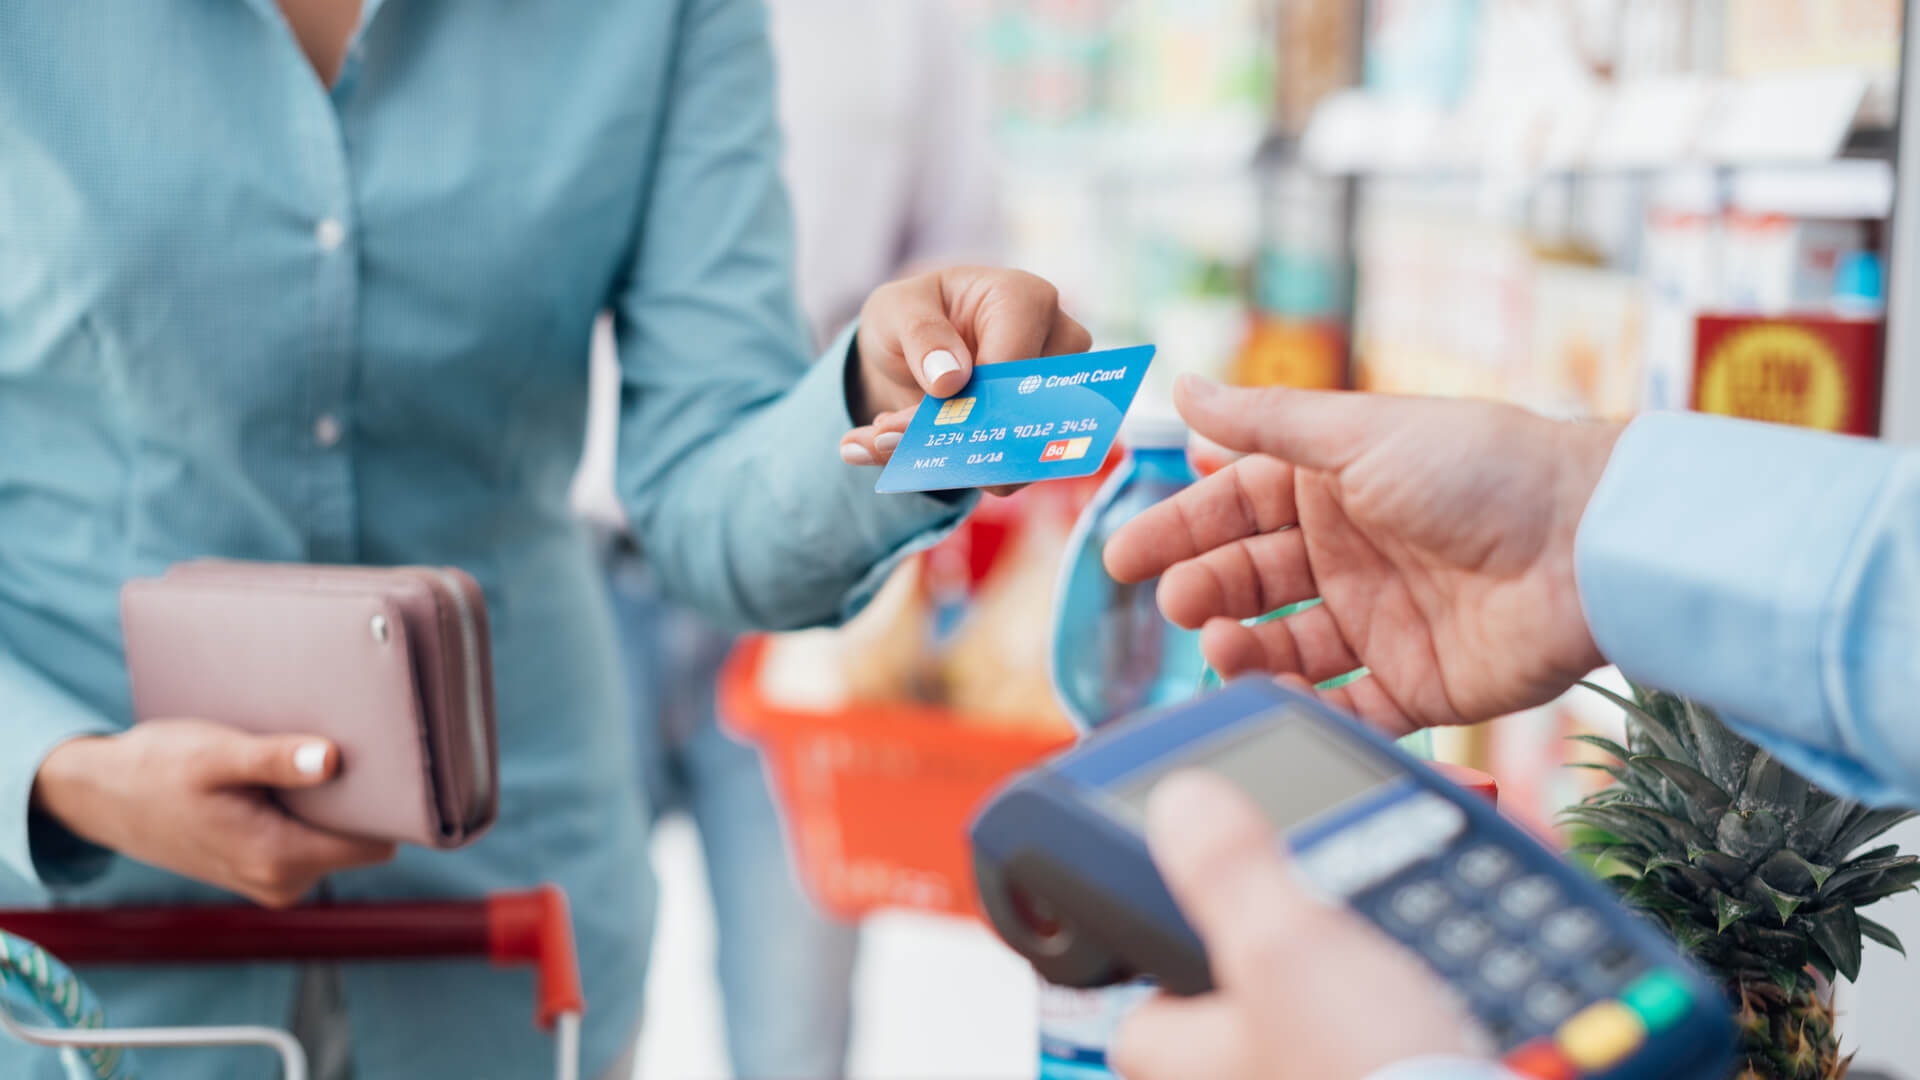 Consumers indicate experience, not price, as top conversion factor